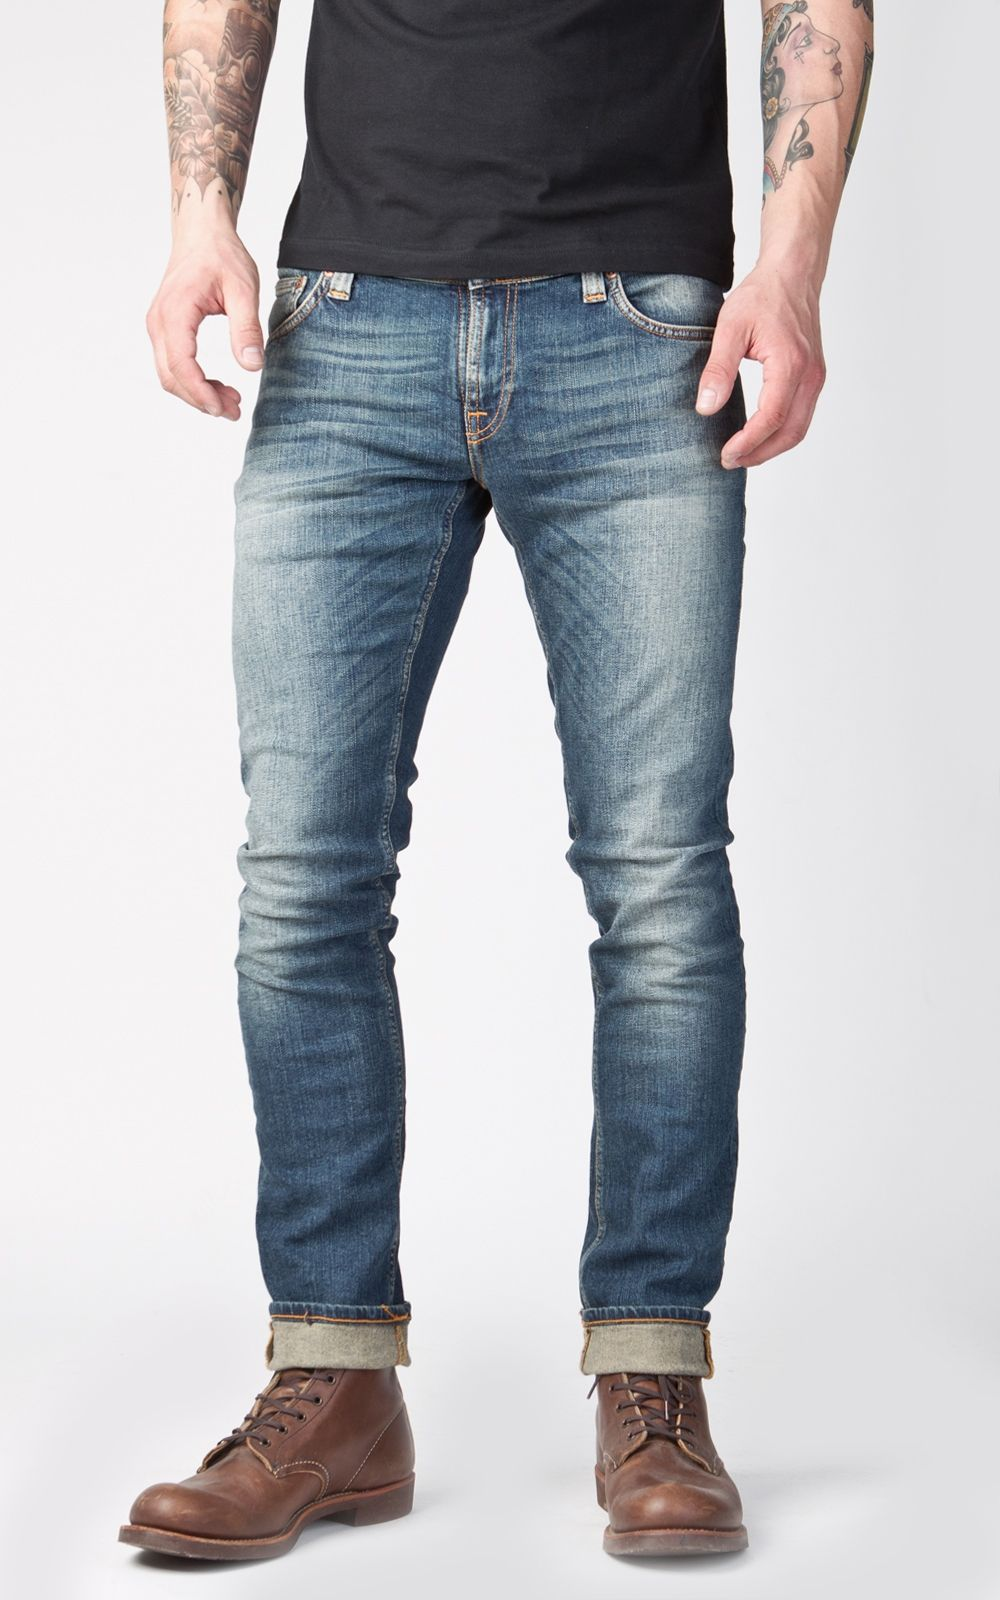 Nudie Jeans Tight Long John White Contrast | Dr. who, Nudie jeans ...